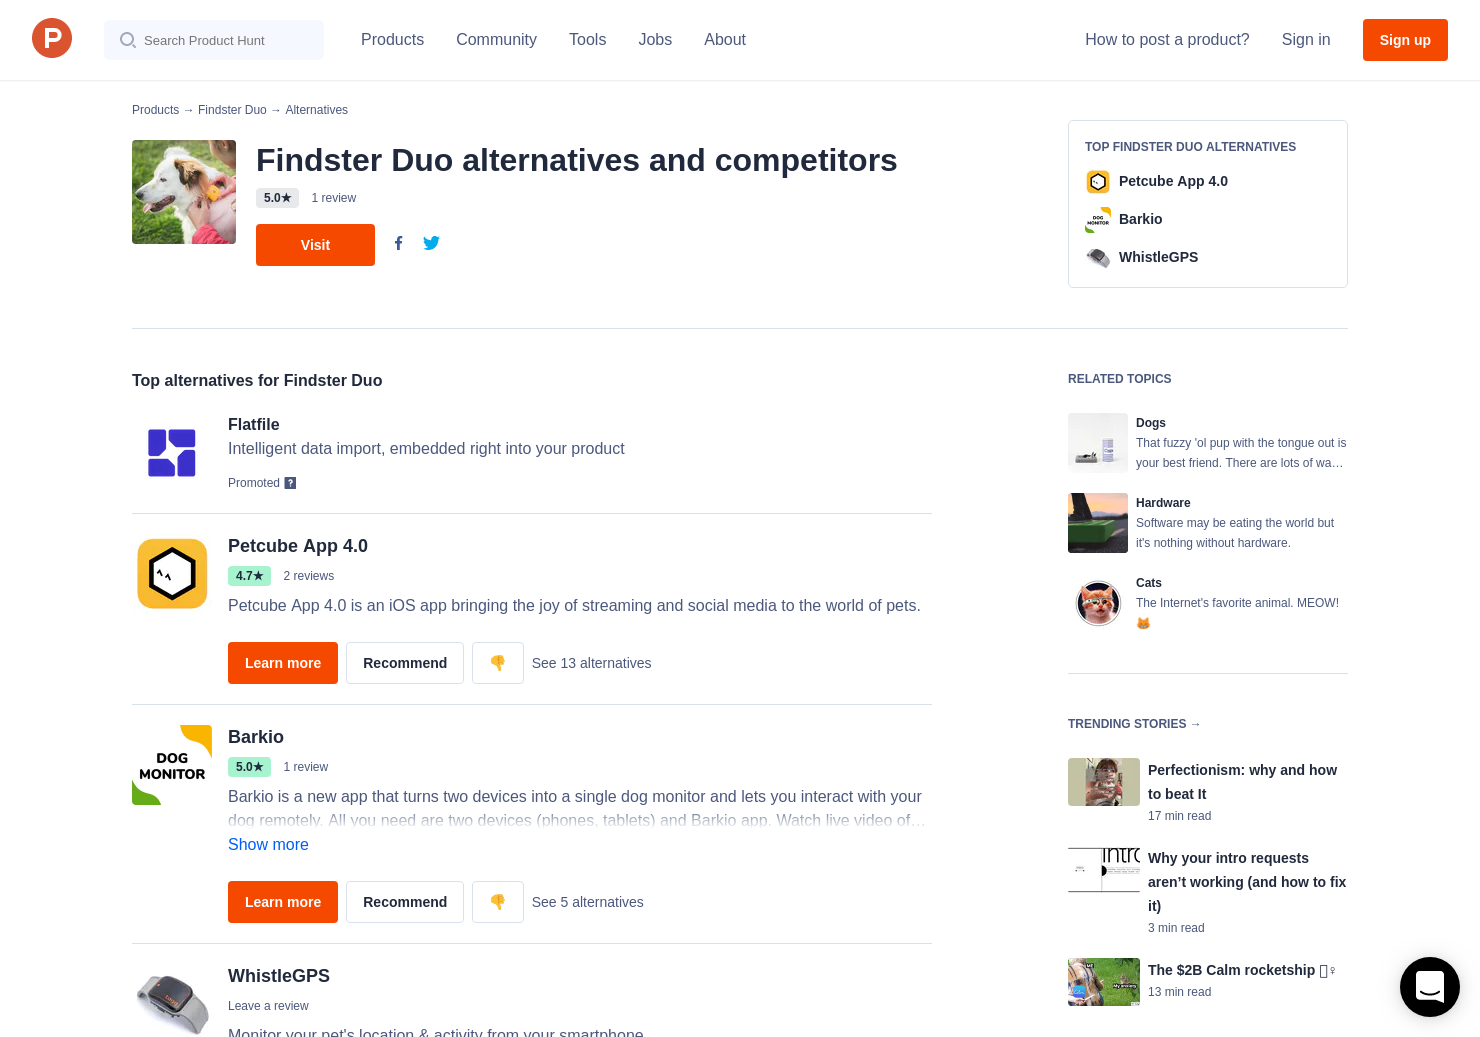 5 Alternatives to Findster Duo | Product Hunt